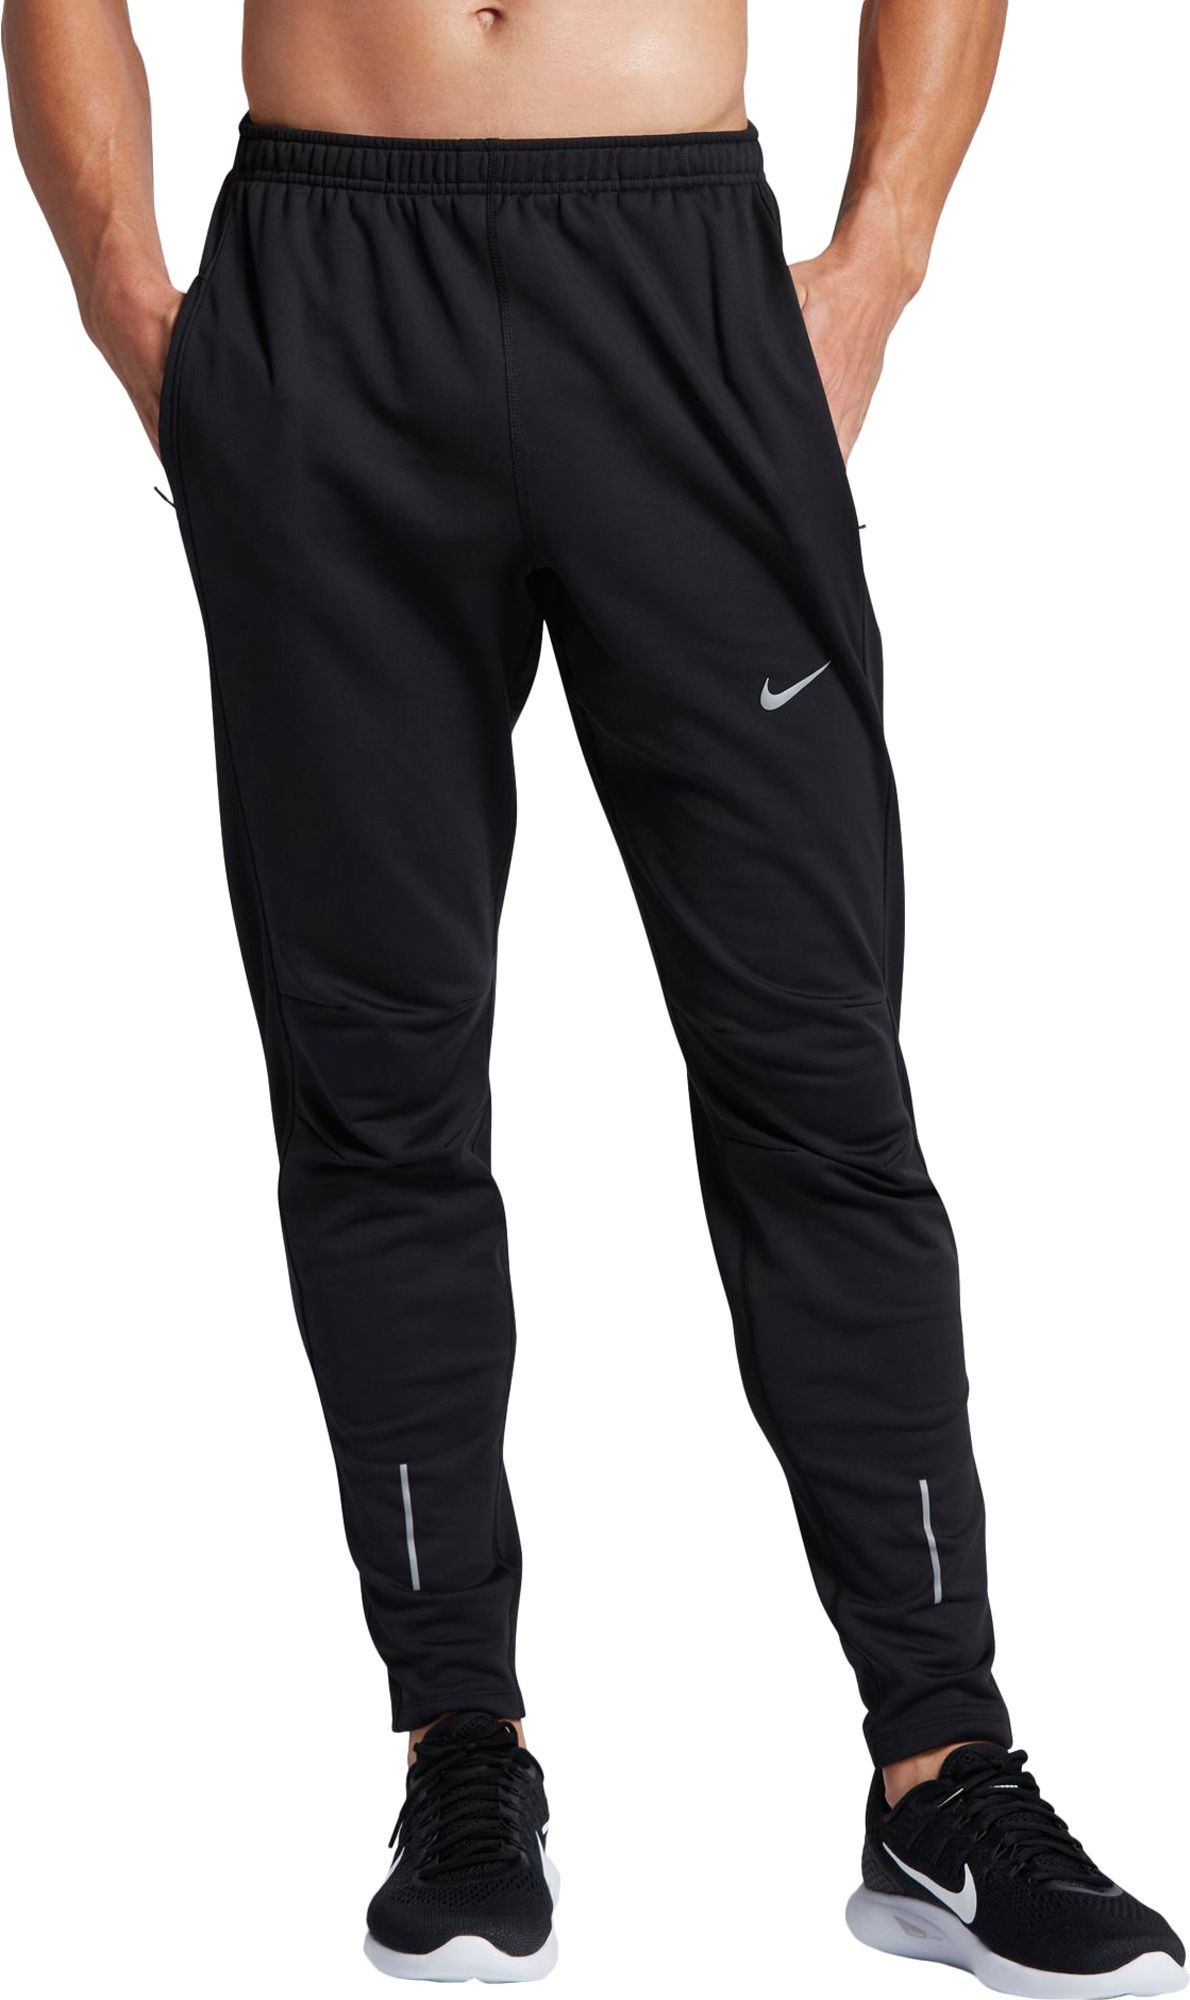 Official Site: Shop men's running & training pants & shorts from ASICS®. FREE SHIPPING on all orders.